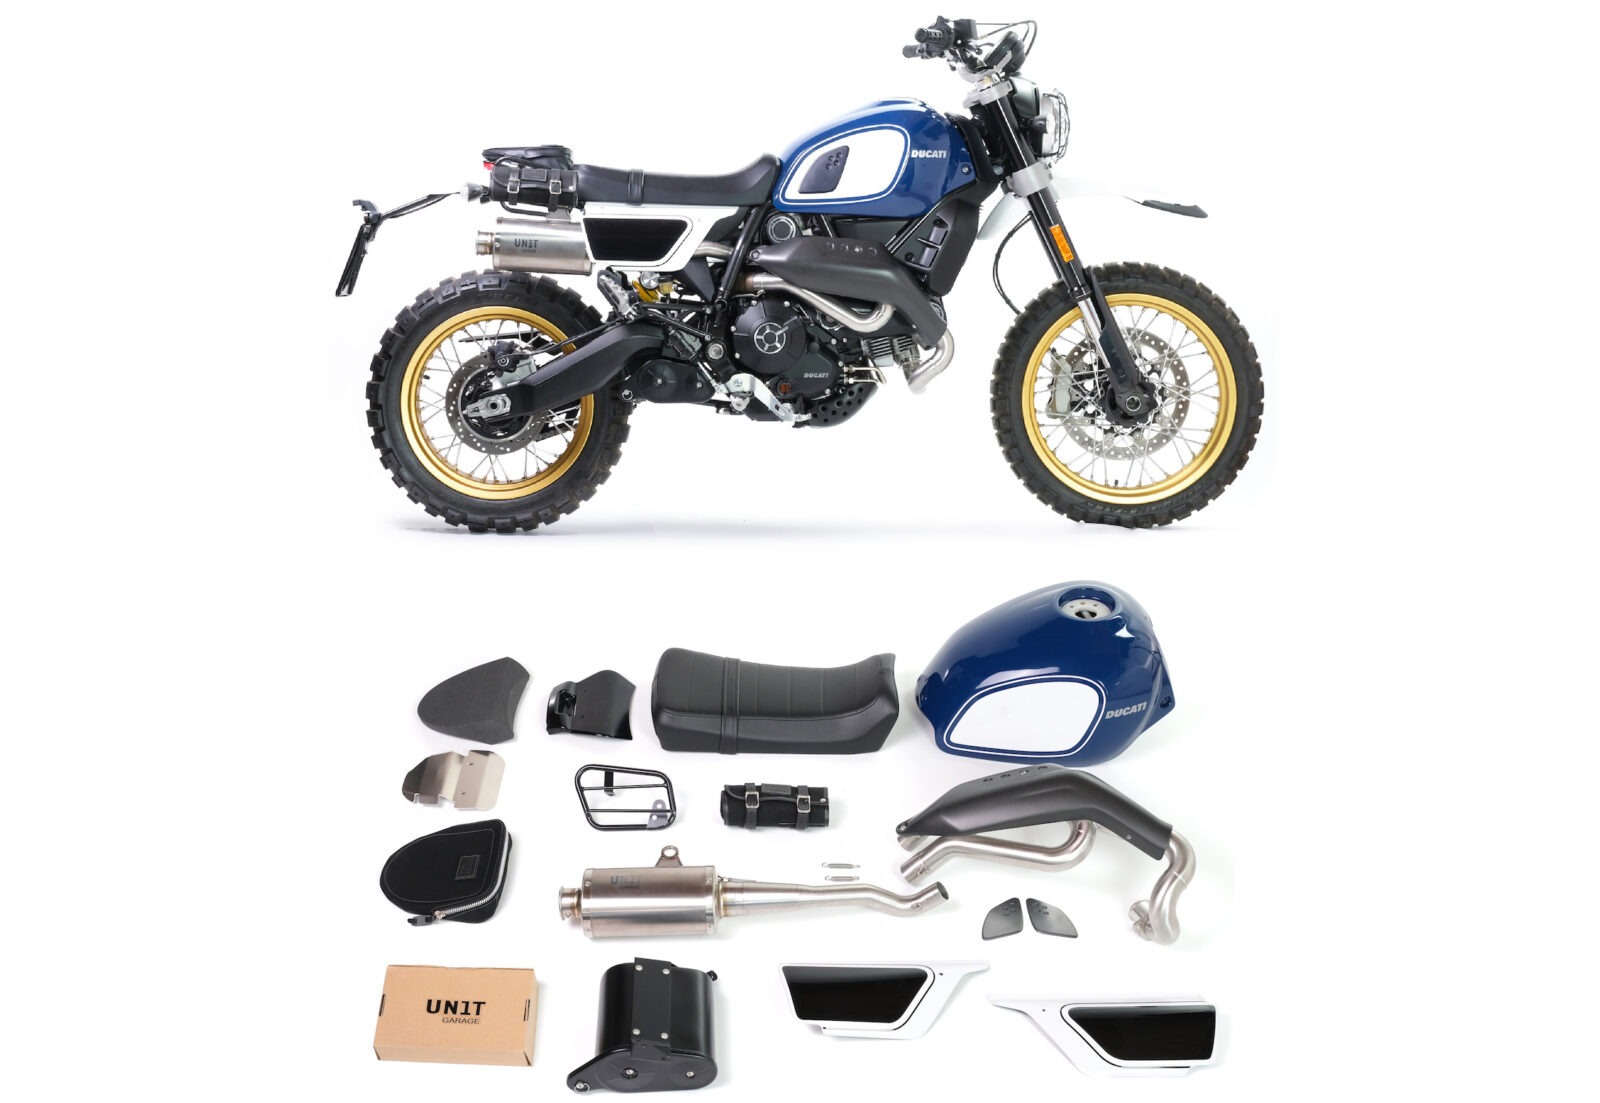 The Fuoriluogo Kit - A Bolt-On Package To Transform Your Ducati Scrambler